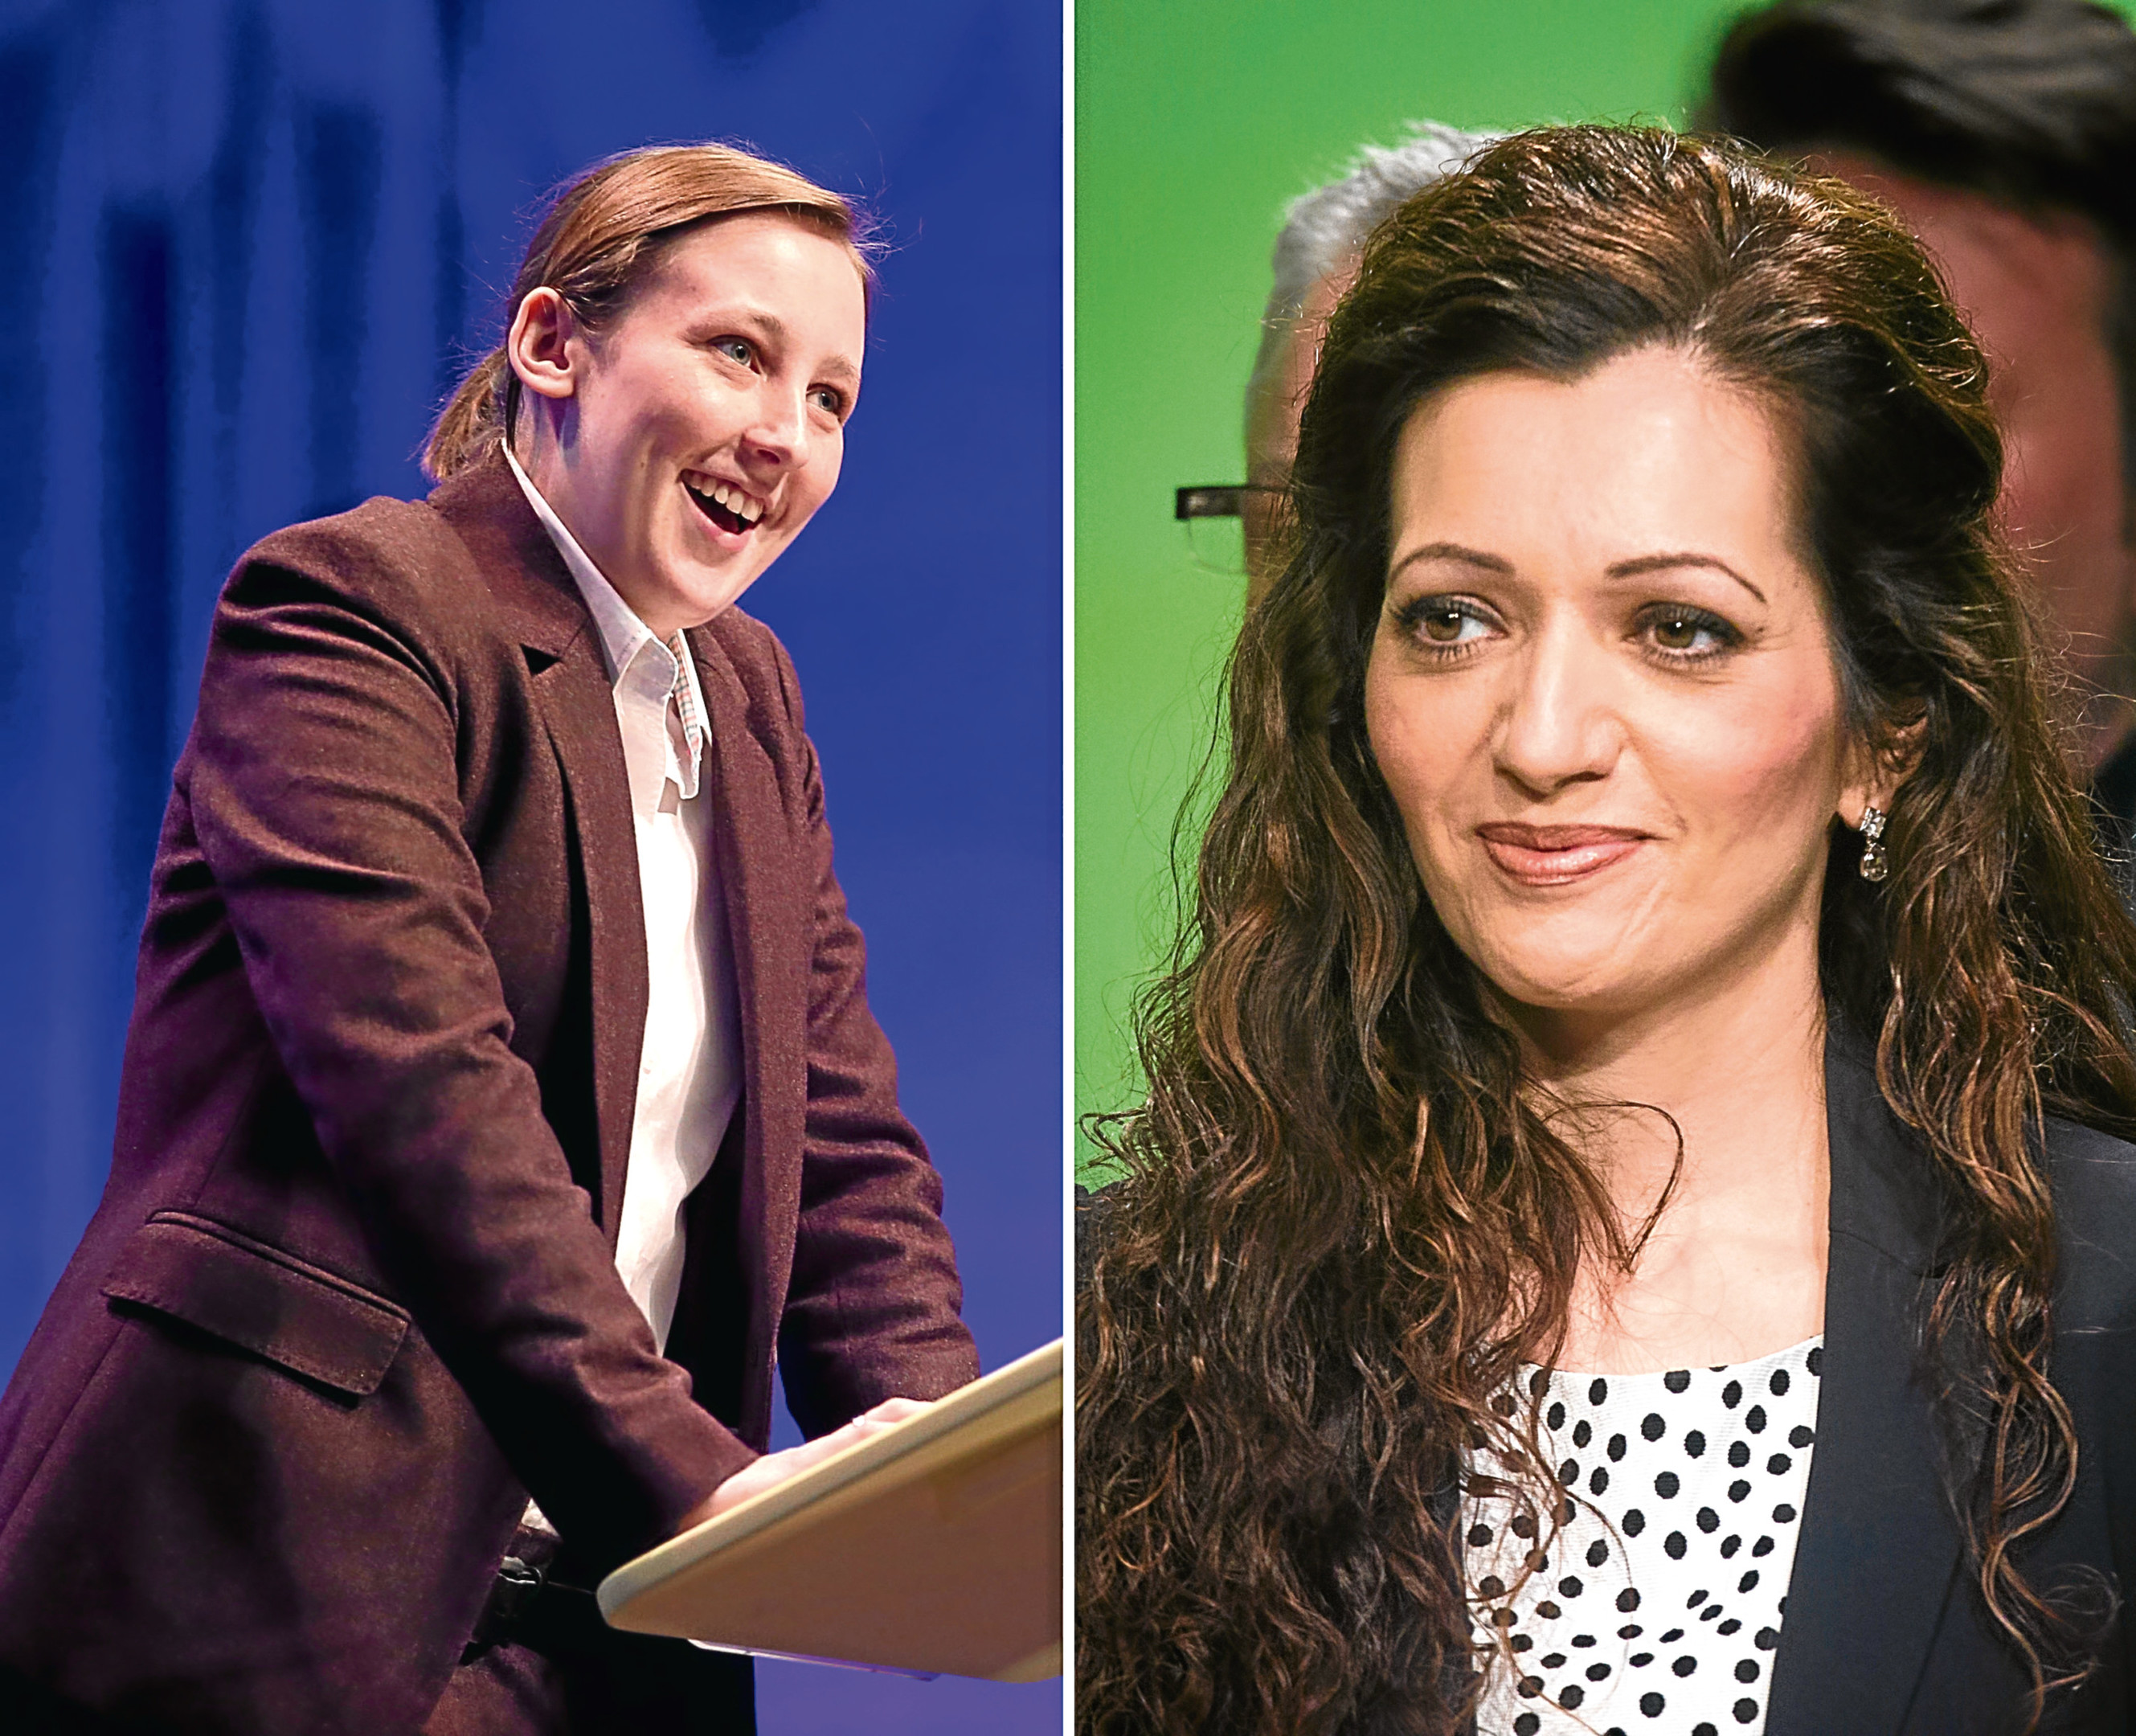 Mhairi Black says Alex Salmond suggested Tasmina Ahmed-Sheikh would give her some style help once she was elected to Westminster.